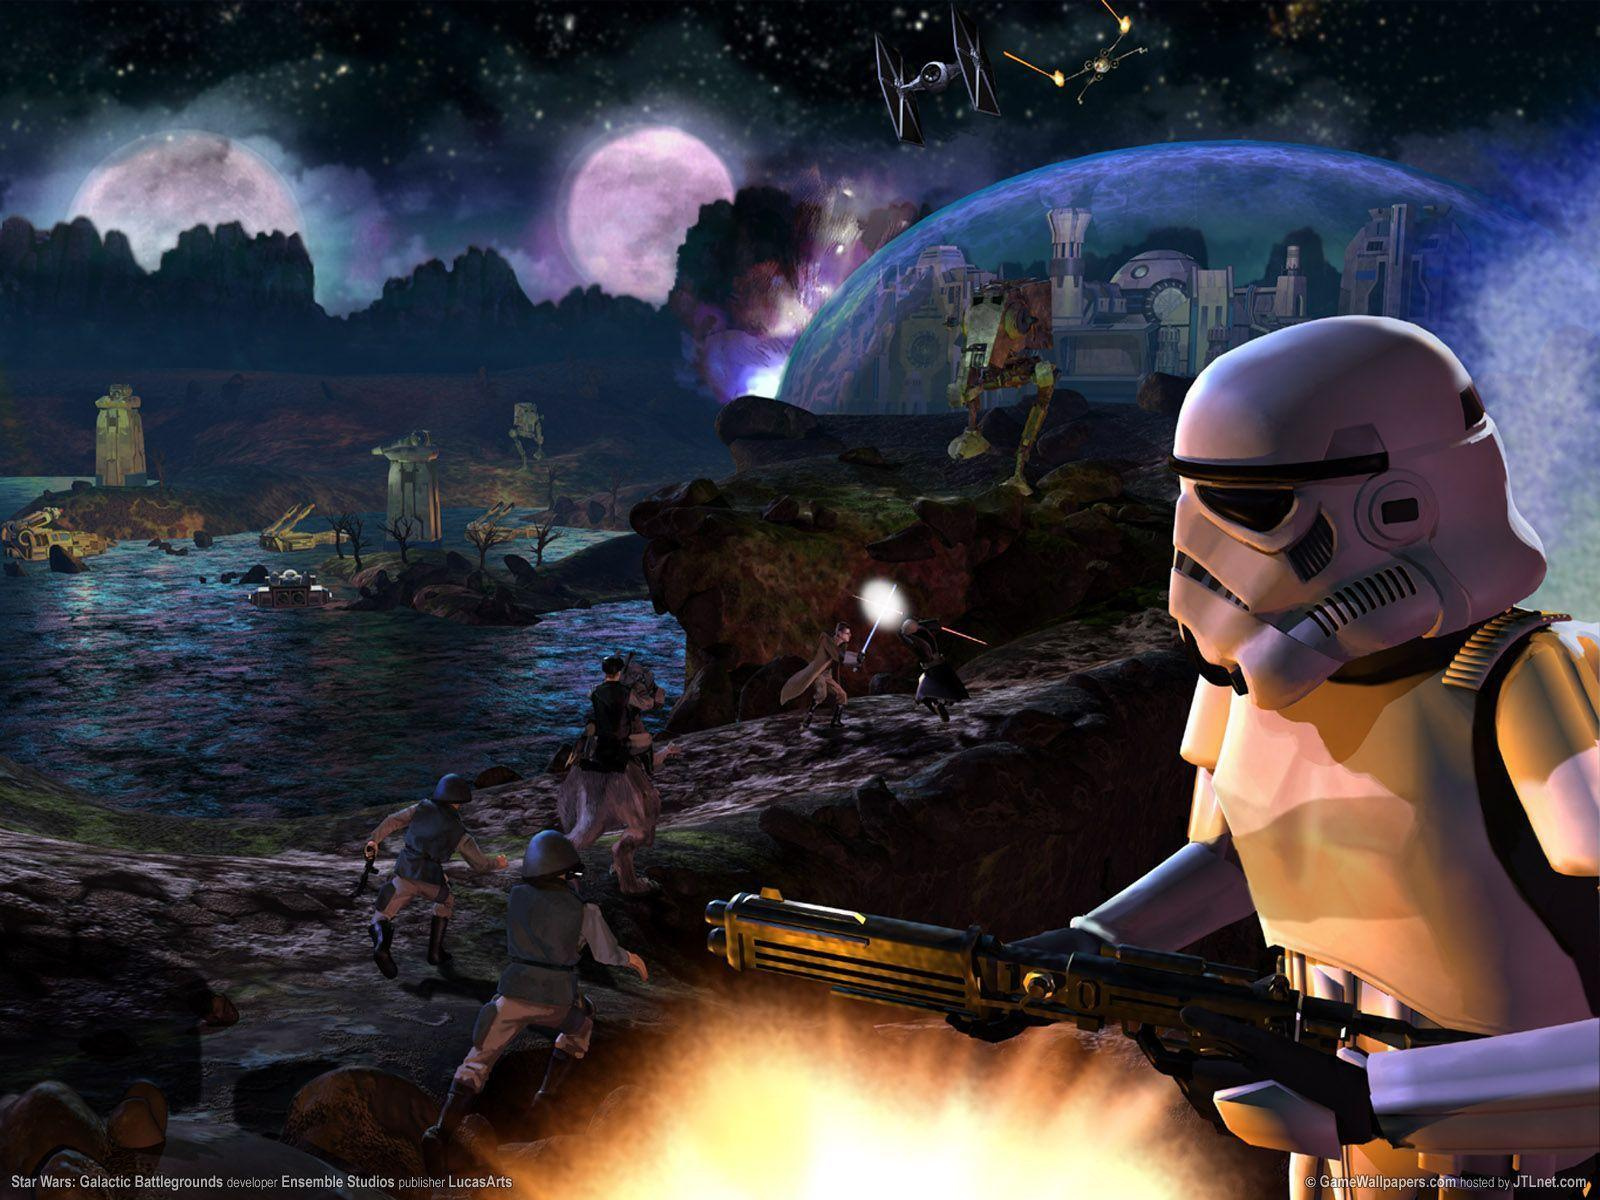 Free Star Wars Wallpapers Wallpaper Cave